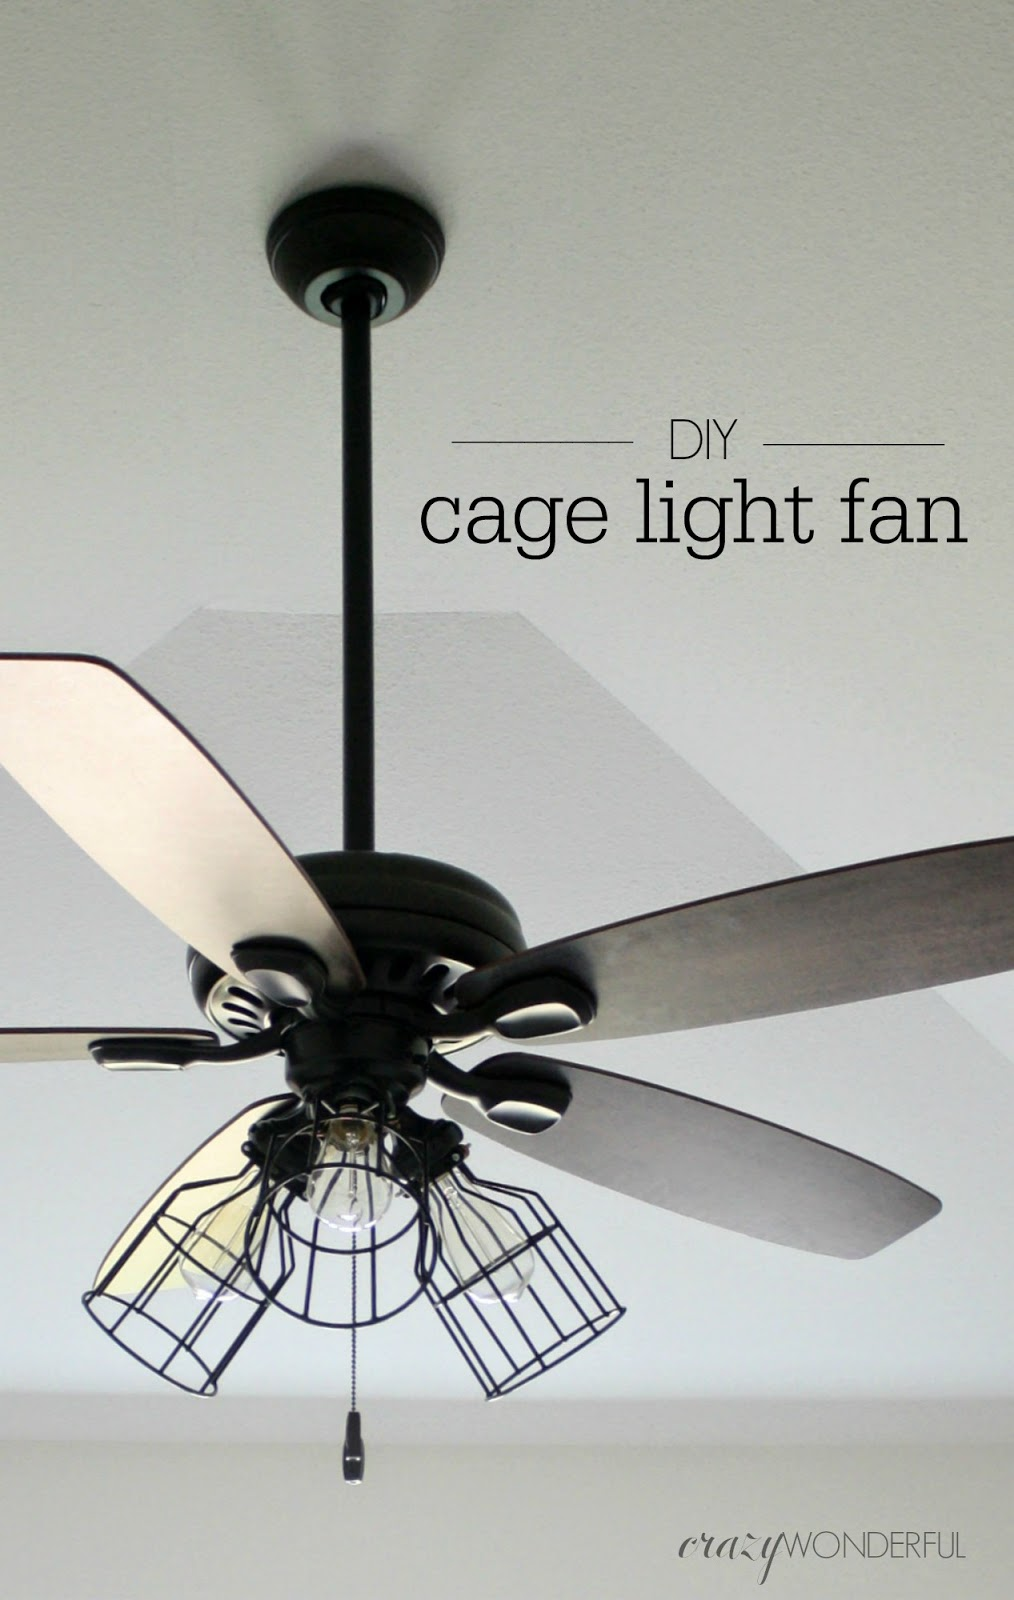 Diy cage light ceiling fan crazy wonderful the caged light fixtures some prices werent outrageous but they were more than i wanted to spend on a playroom fan so heres what i came up with aloadofball Image collections